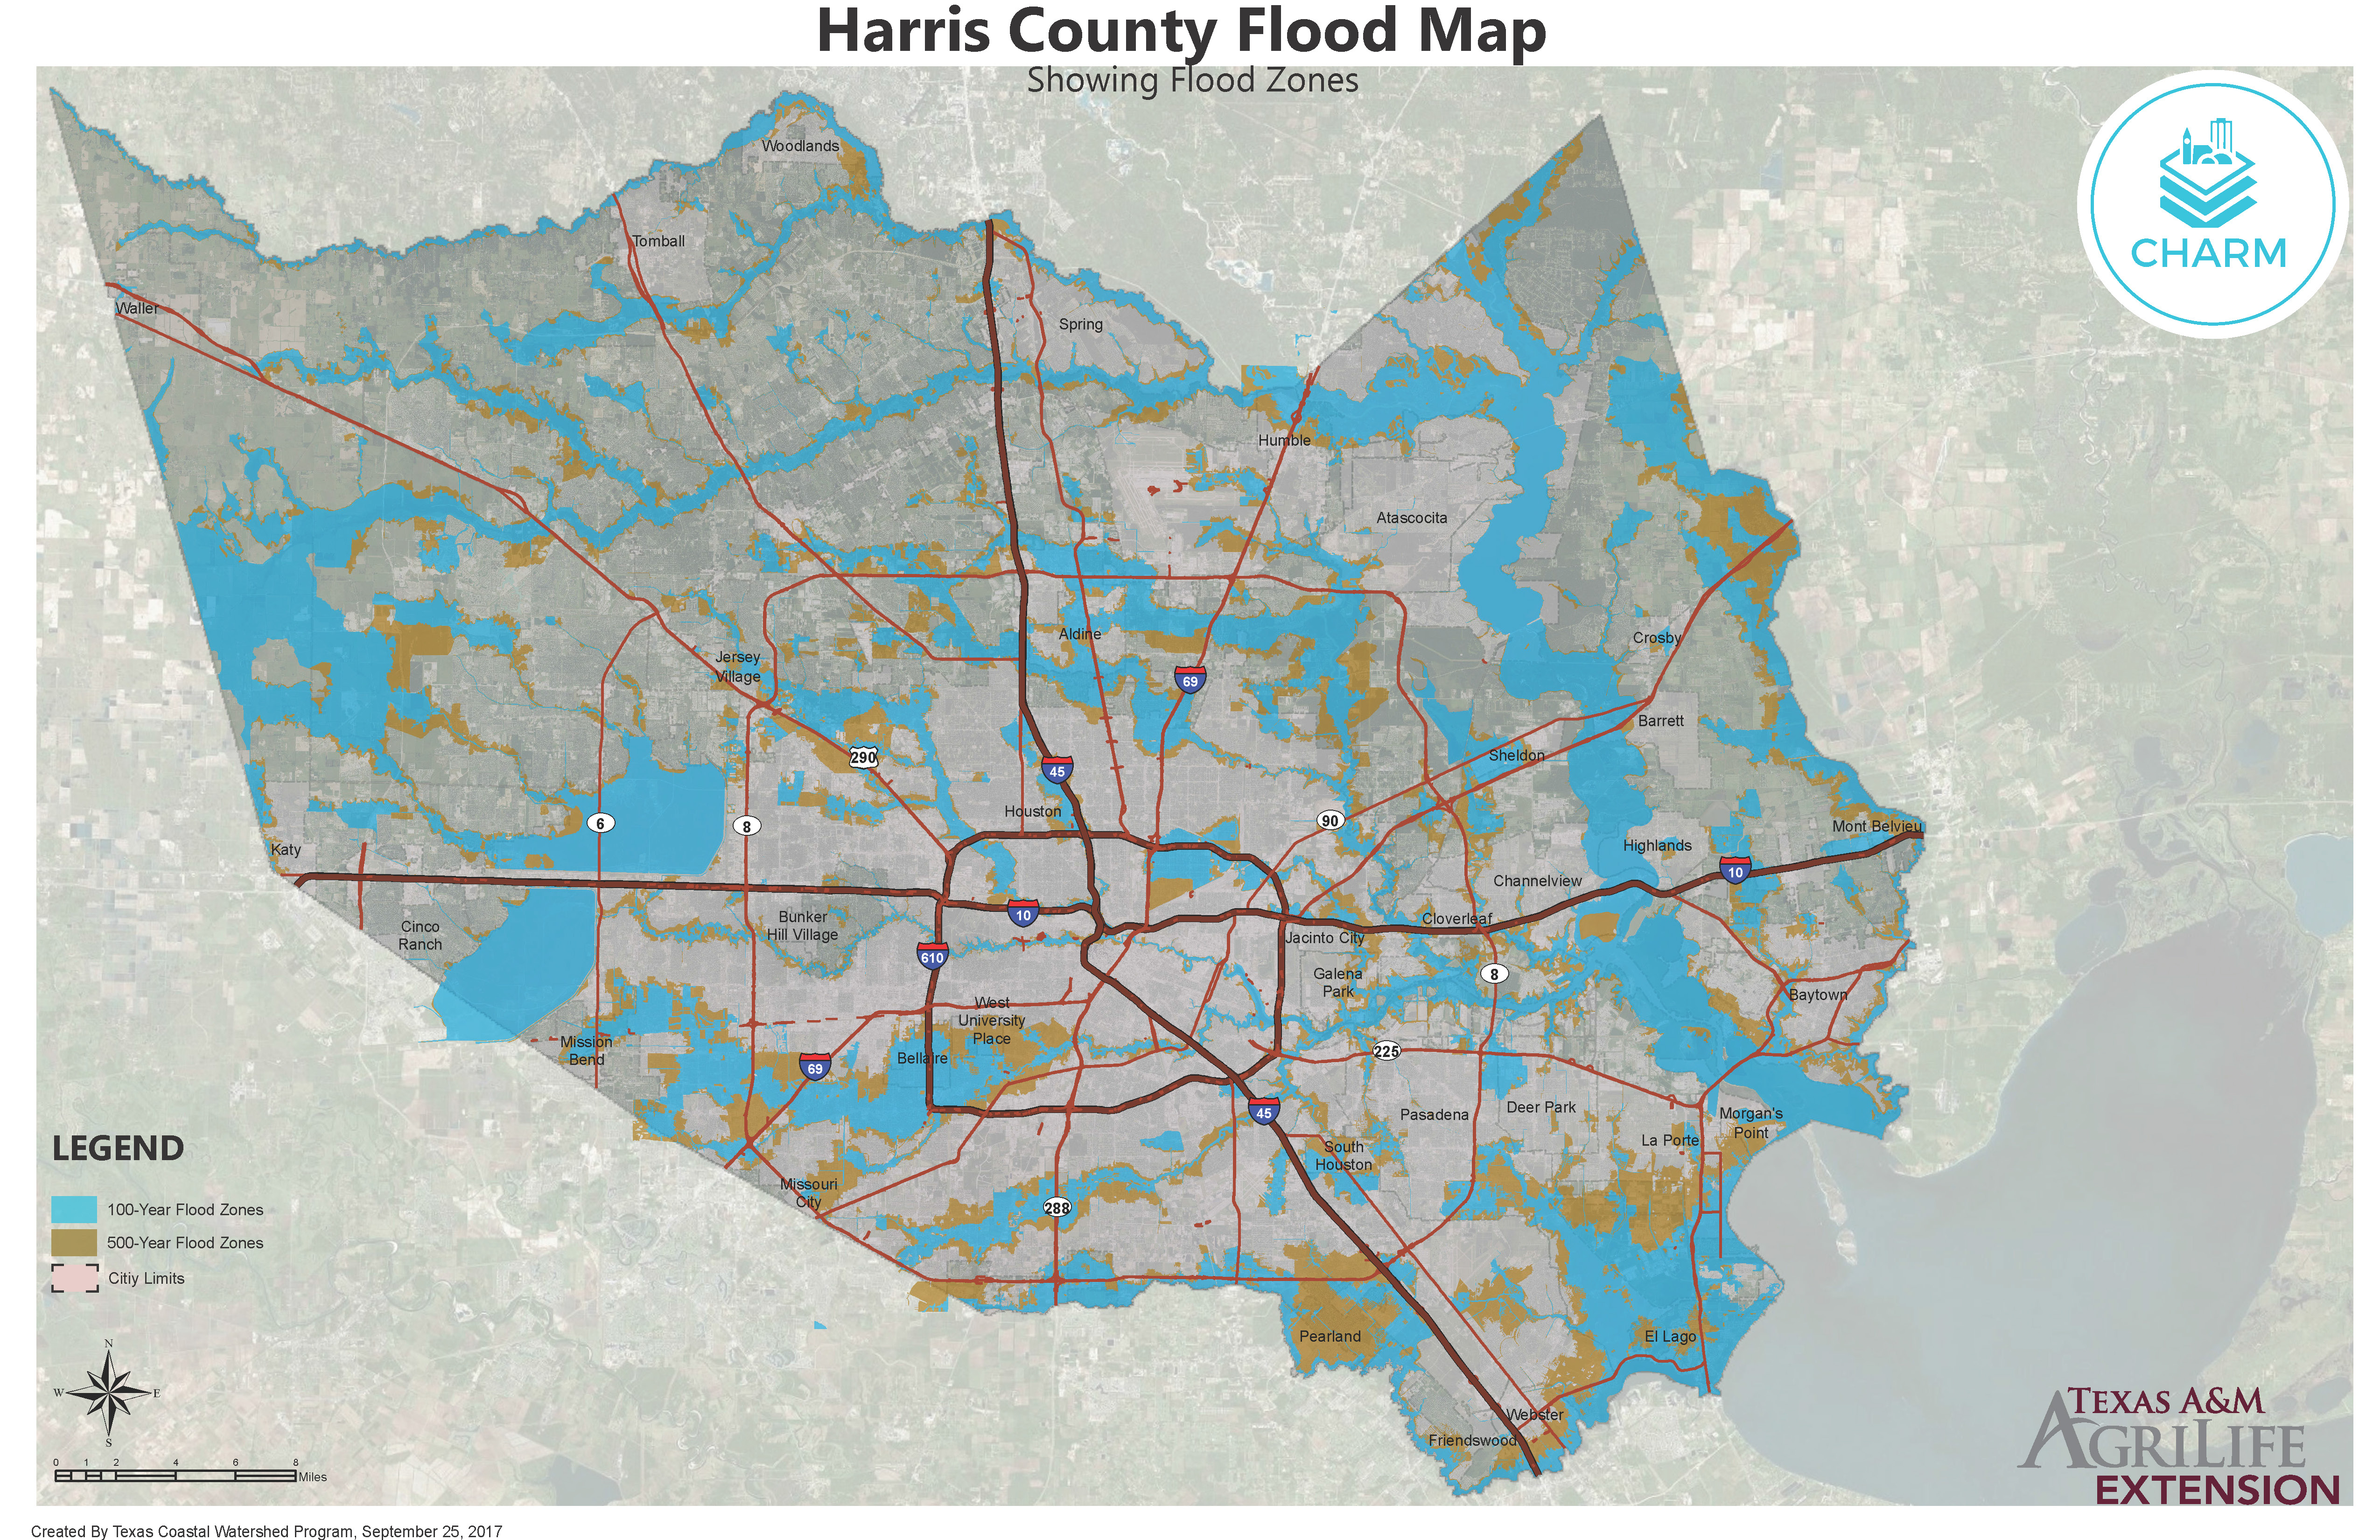 Flood Zone Maps For Coastal Counties | Texas Community Watershed - Texas Flood Map